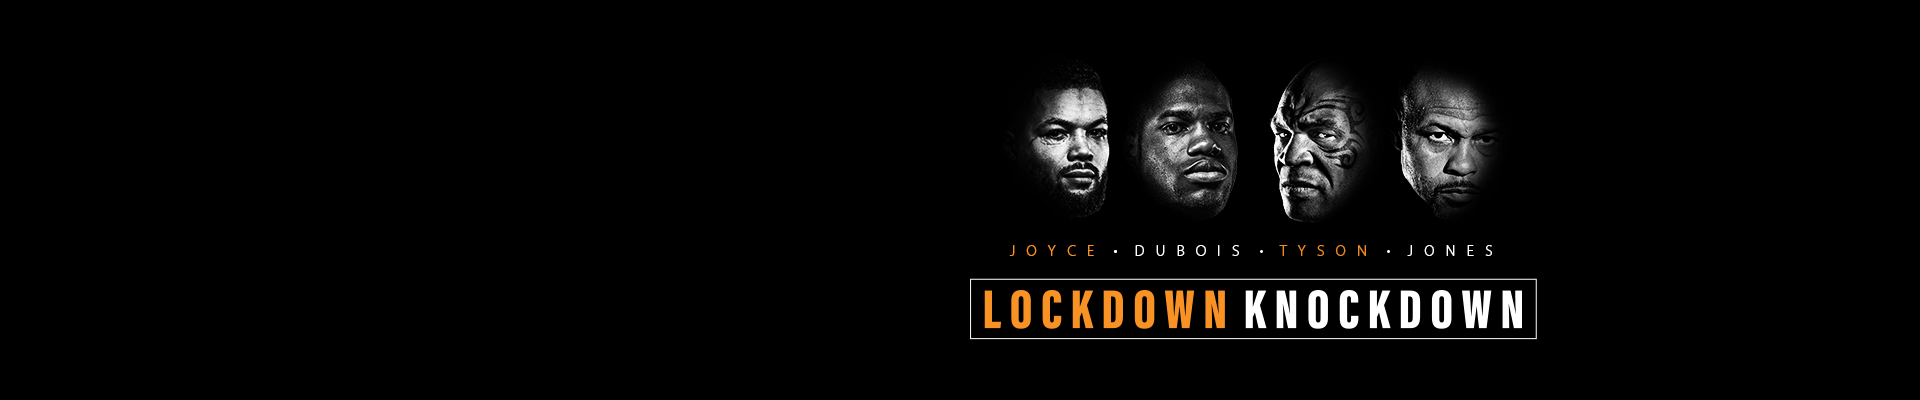 Watch a brilliant boxing double header on Saturday 28 November as Daniel Dubois faces Joe Joyce and Mike Tyson takes on Roy Jones Jr